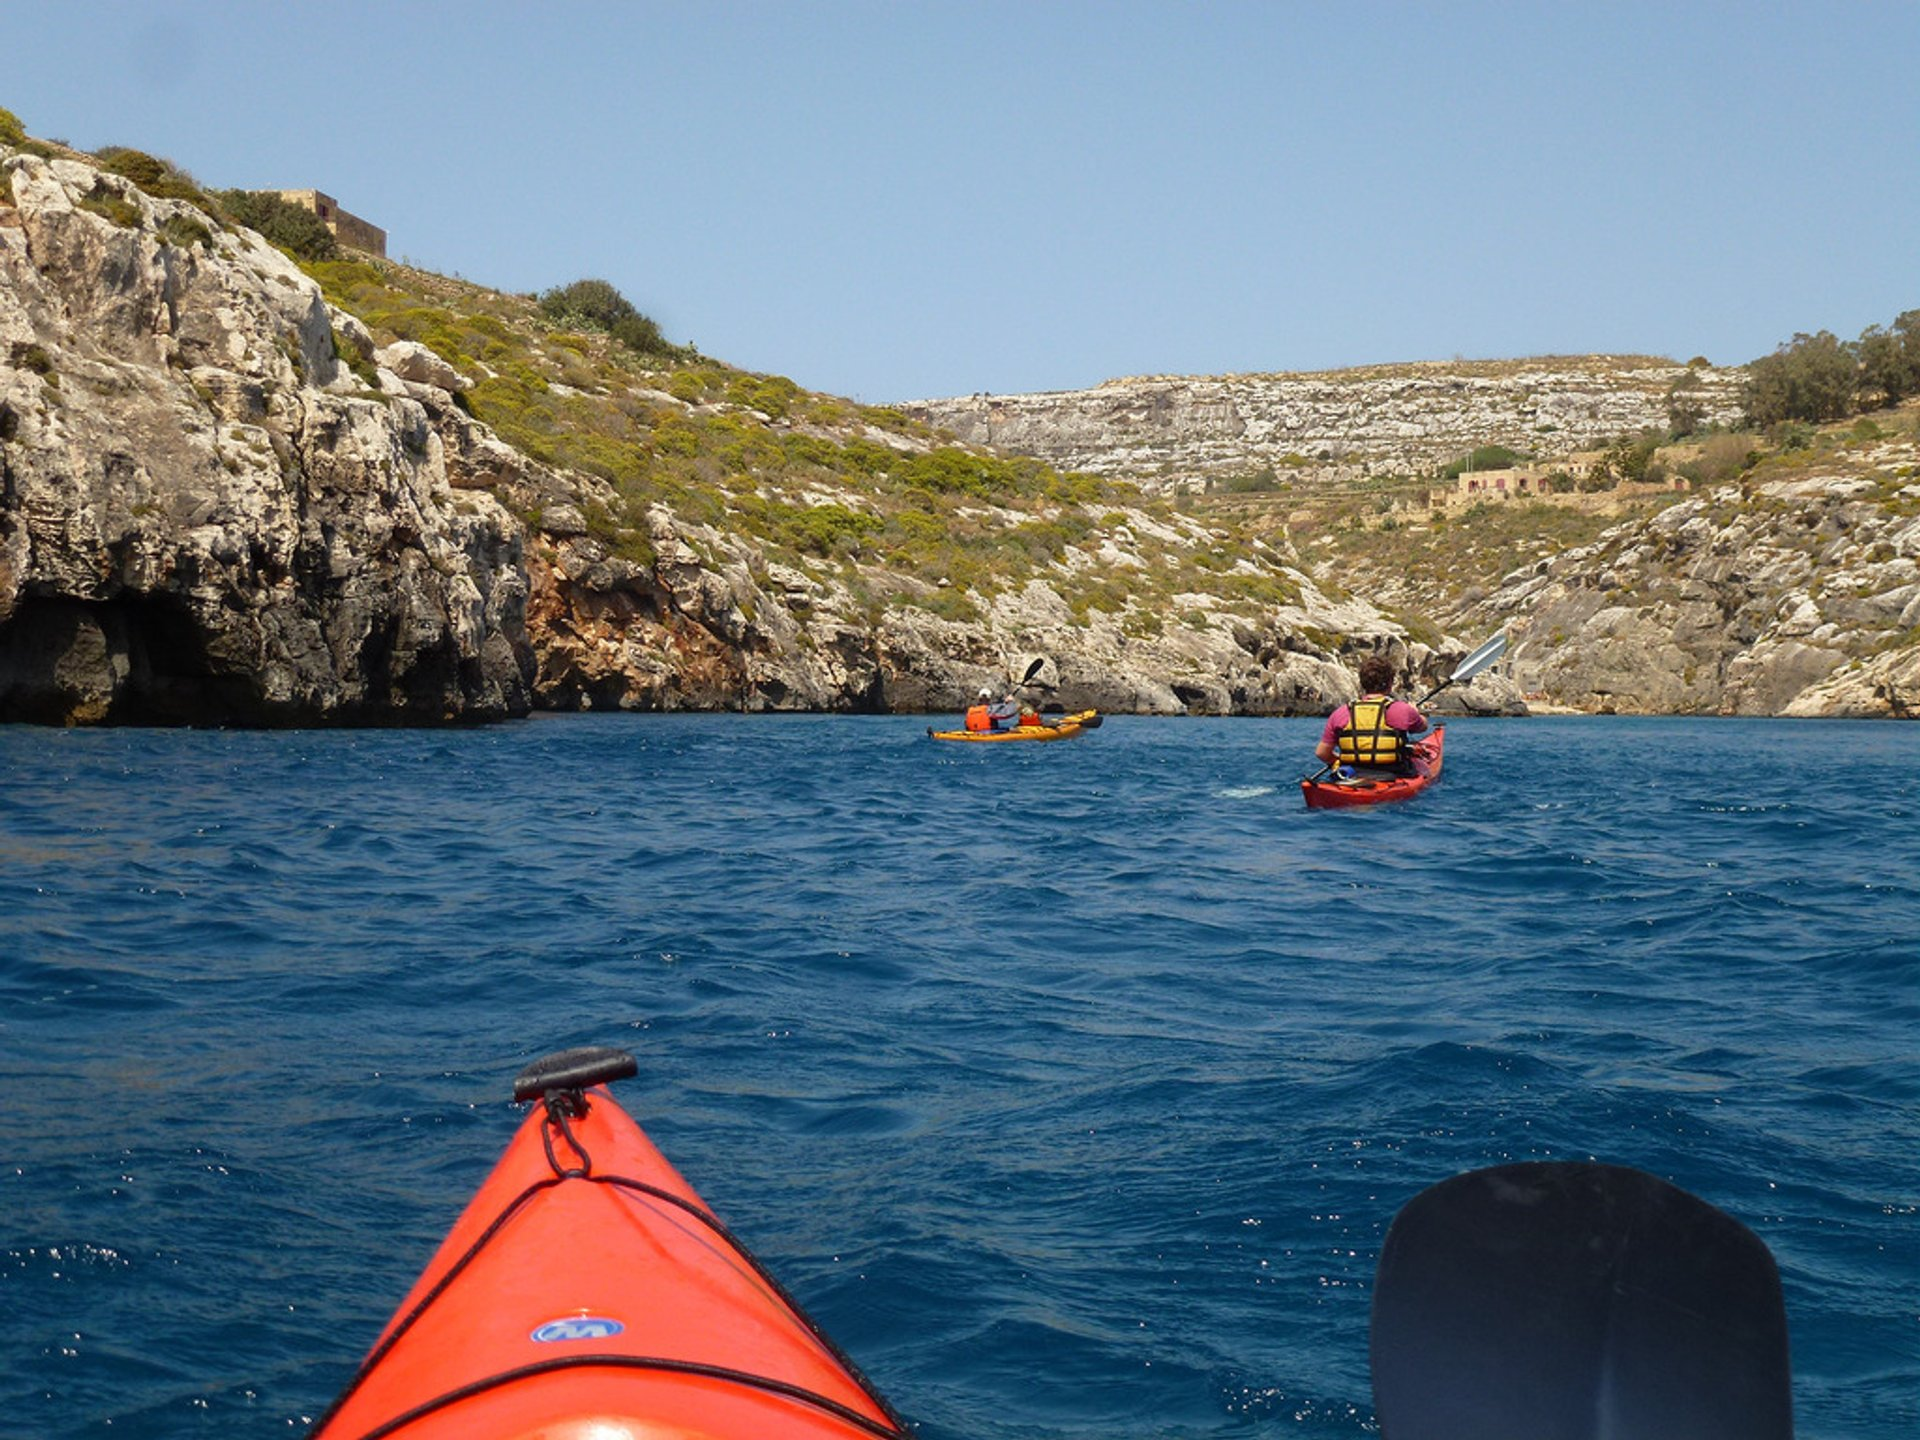 Kayaking in Malta - Best Season 2020